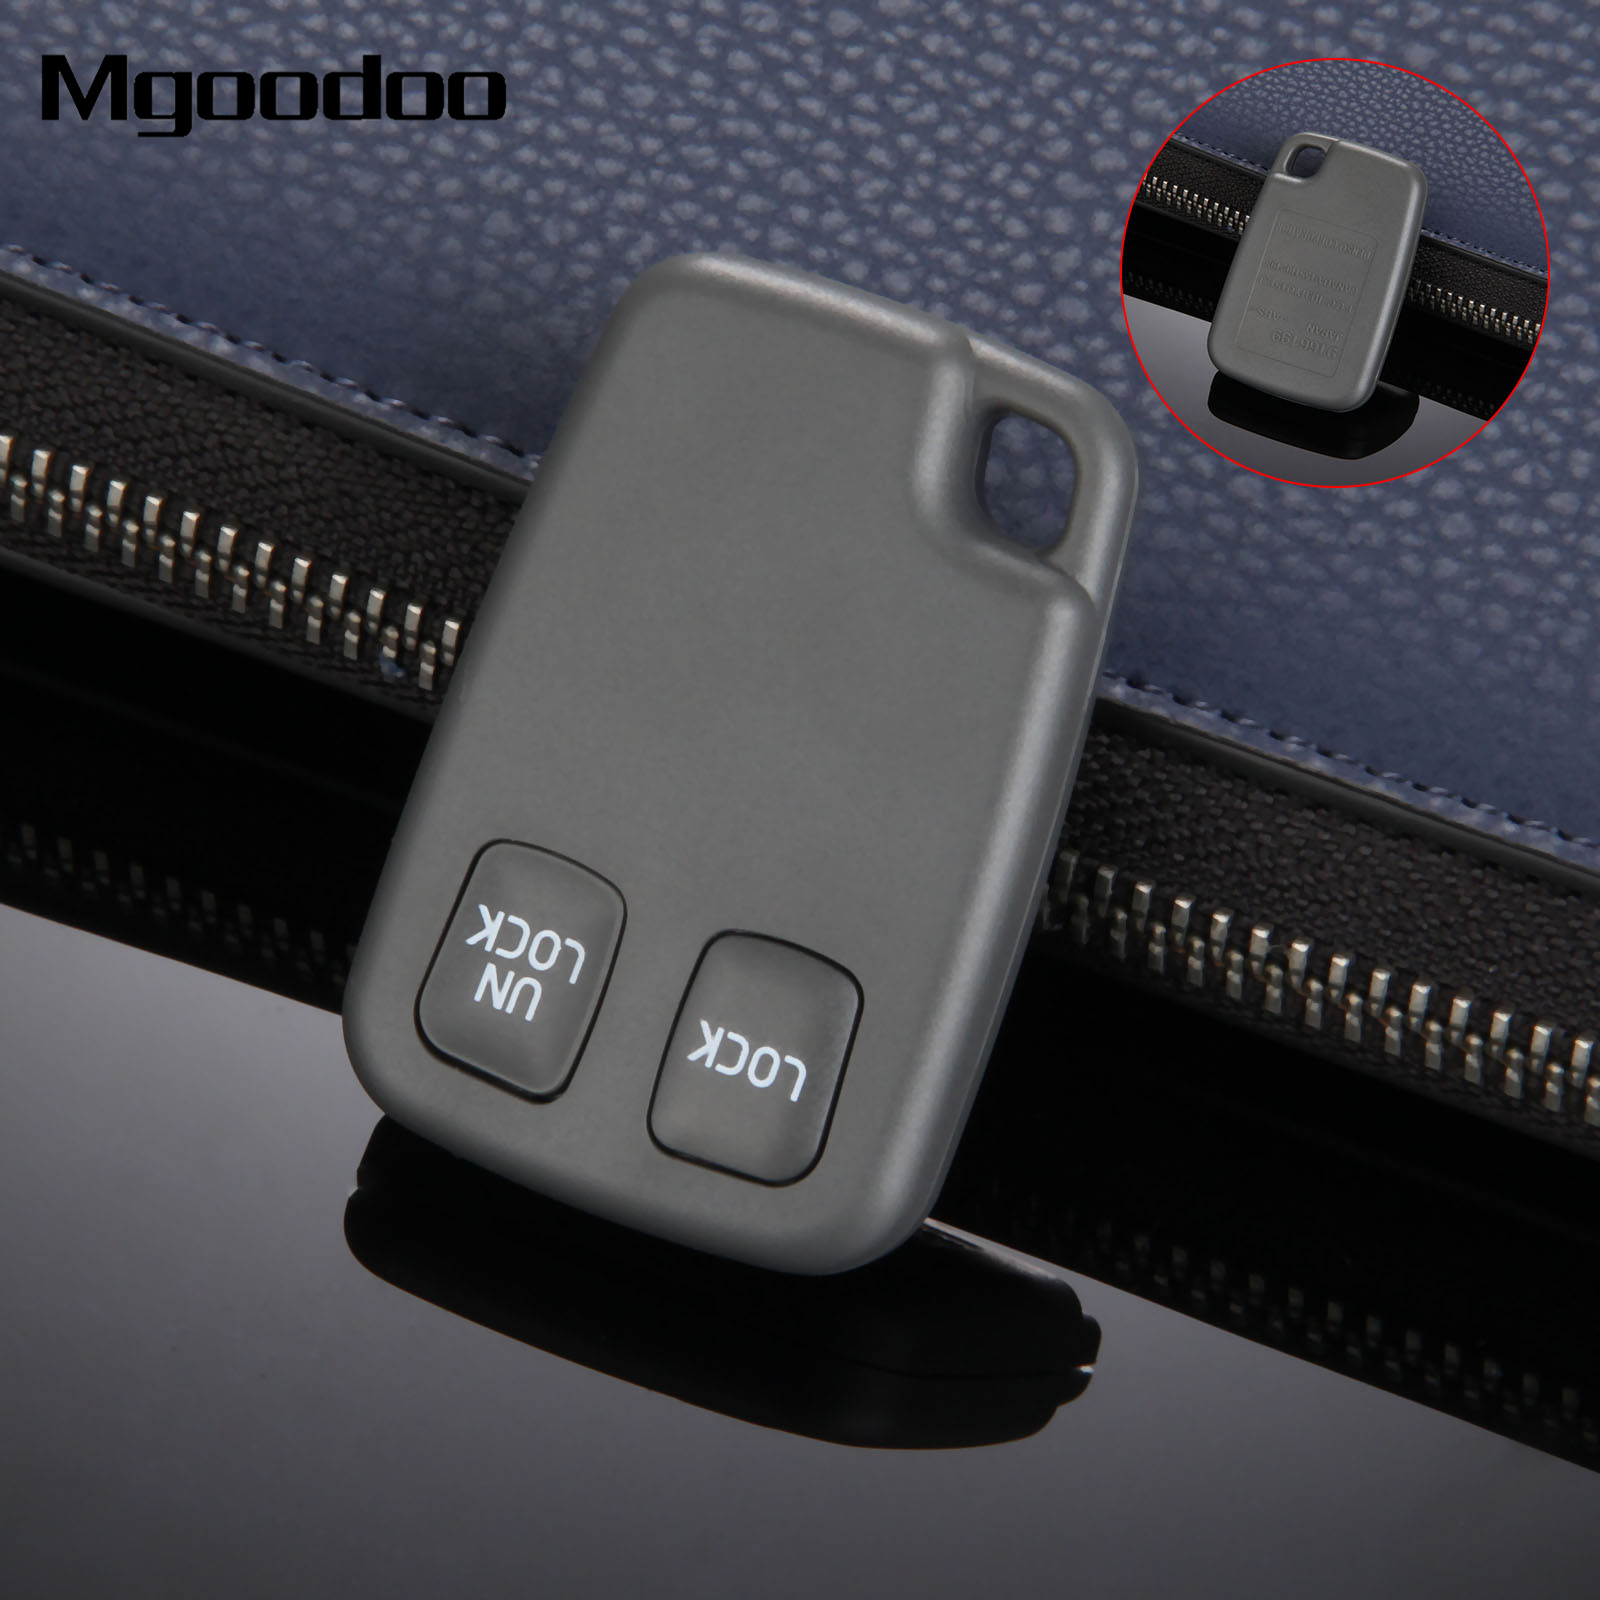 Mgoodoo 2 Button Car Remote <font><b>Key</b></font> Blank Fob Case For <font><b>VOLVO</b></font> C70 <font><b>S40</b></font> S60 S70 S80 S90 V40 V70 V90 XC70 XC90 <font><b>Replacement</b></font> Car <font><b>Key</b></font> Shell image